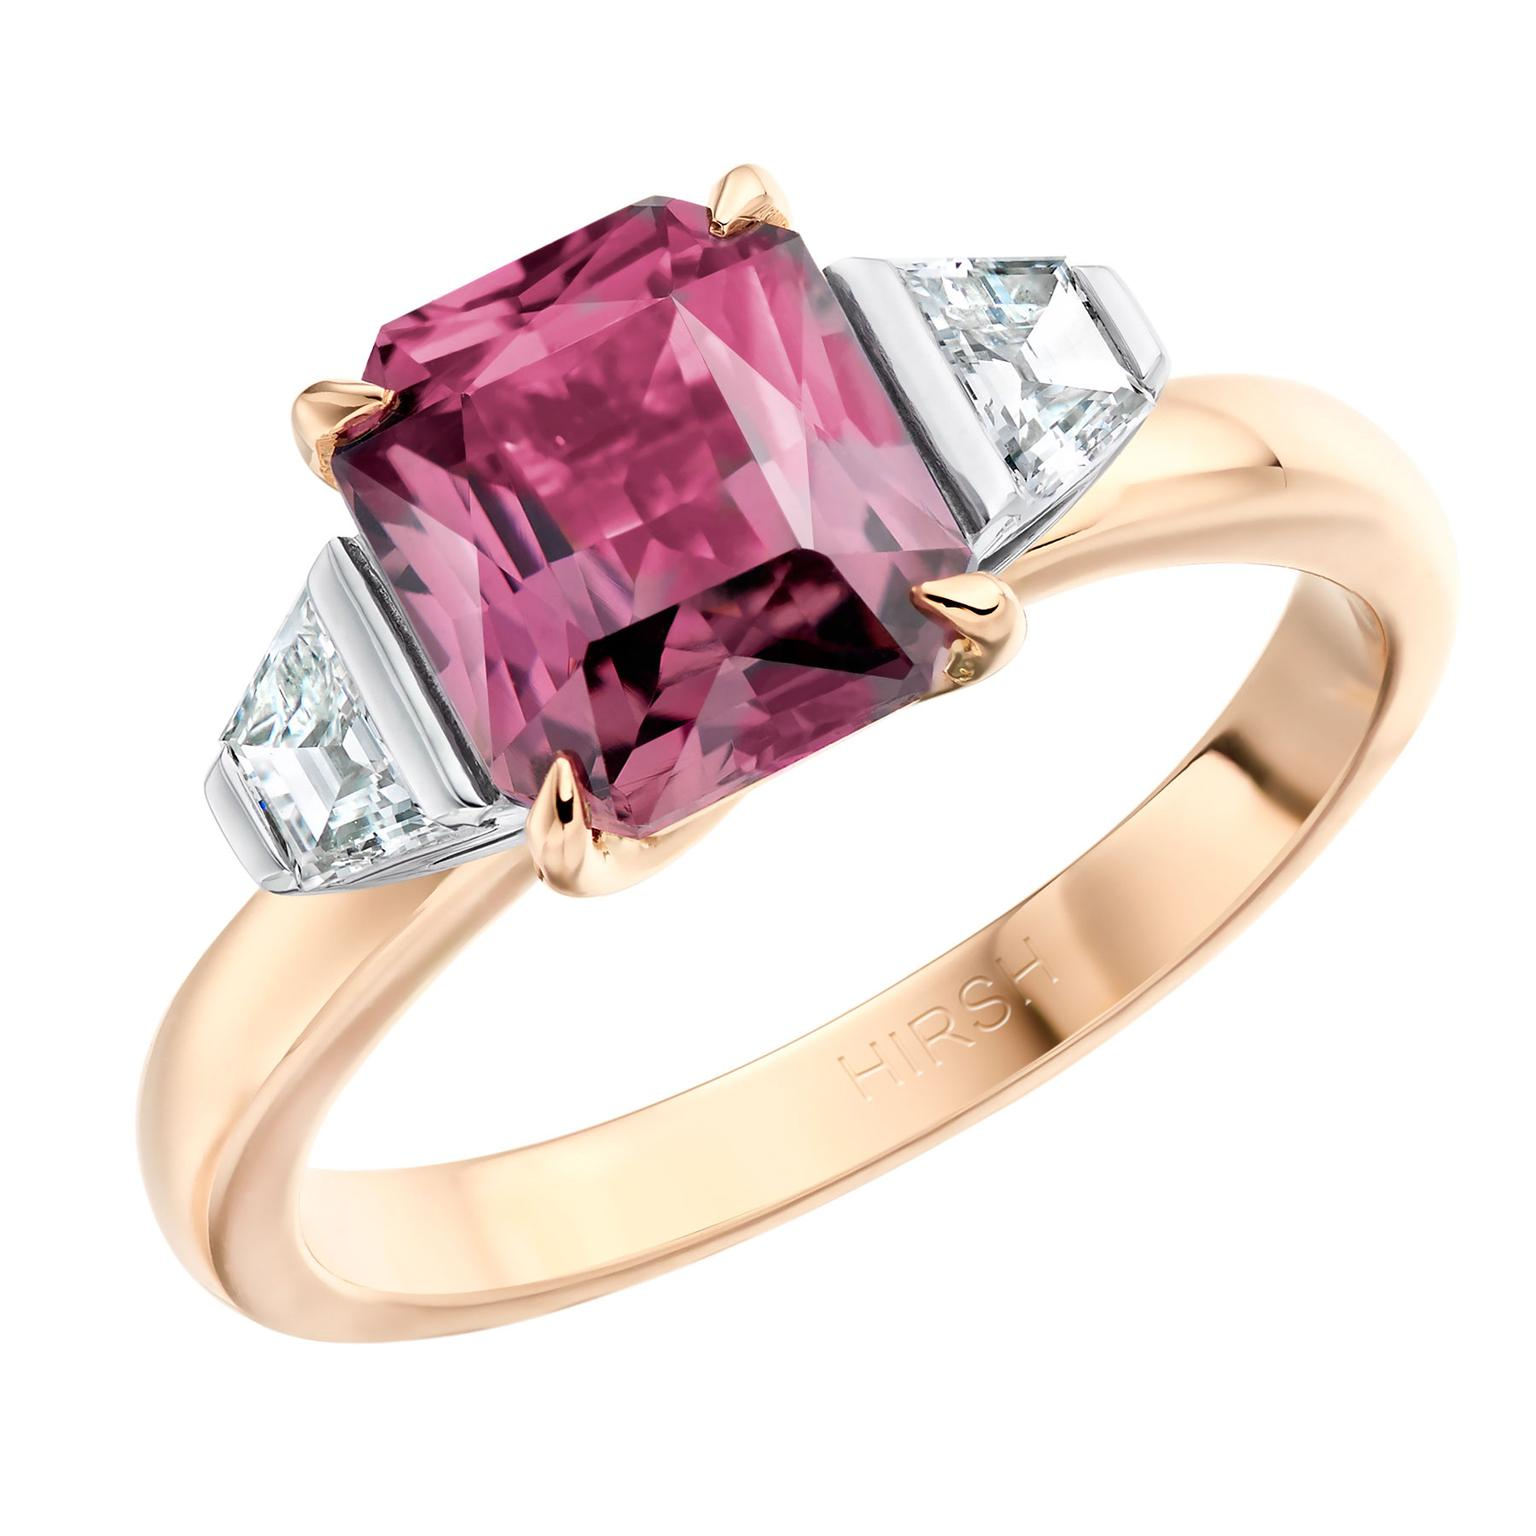 Hirsh Trio purple-brown sapphire engagement ring